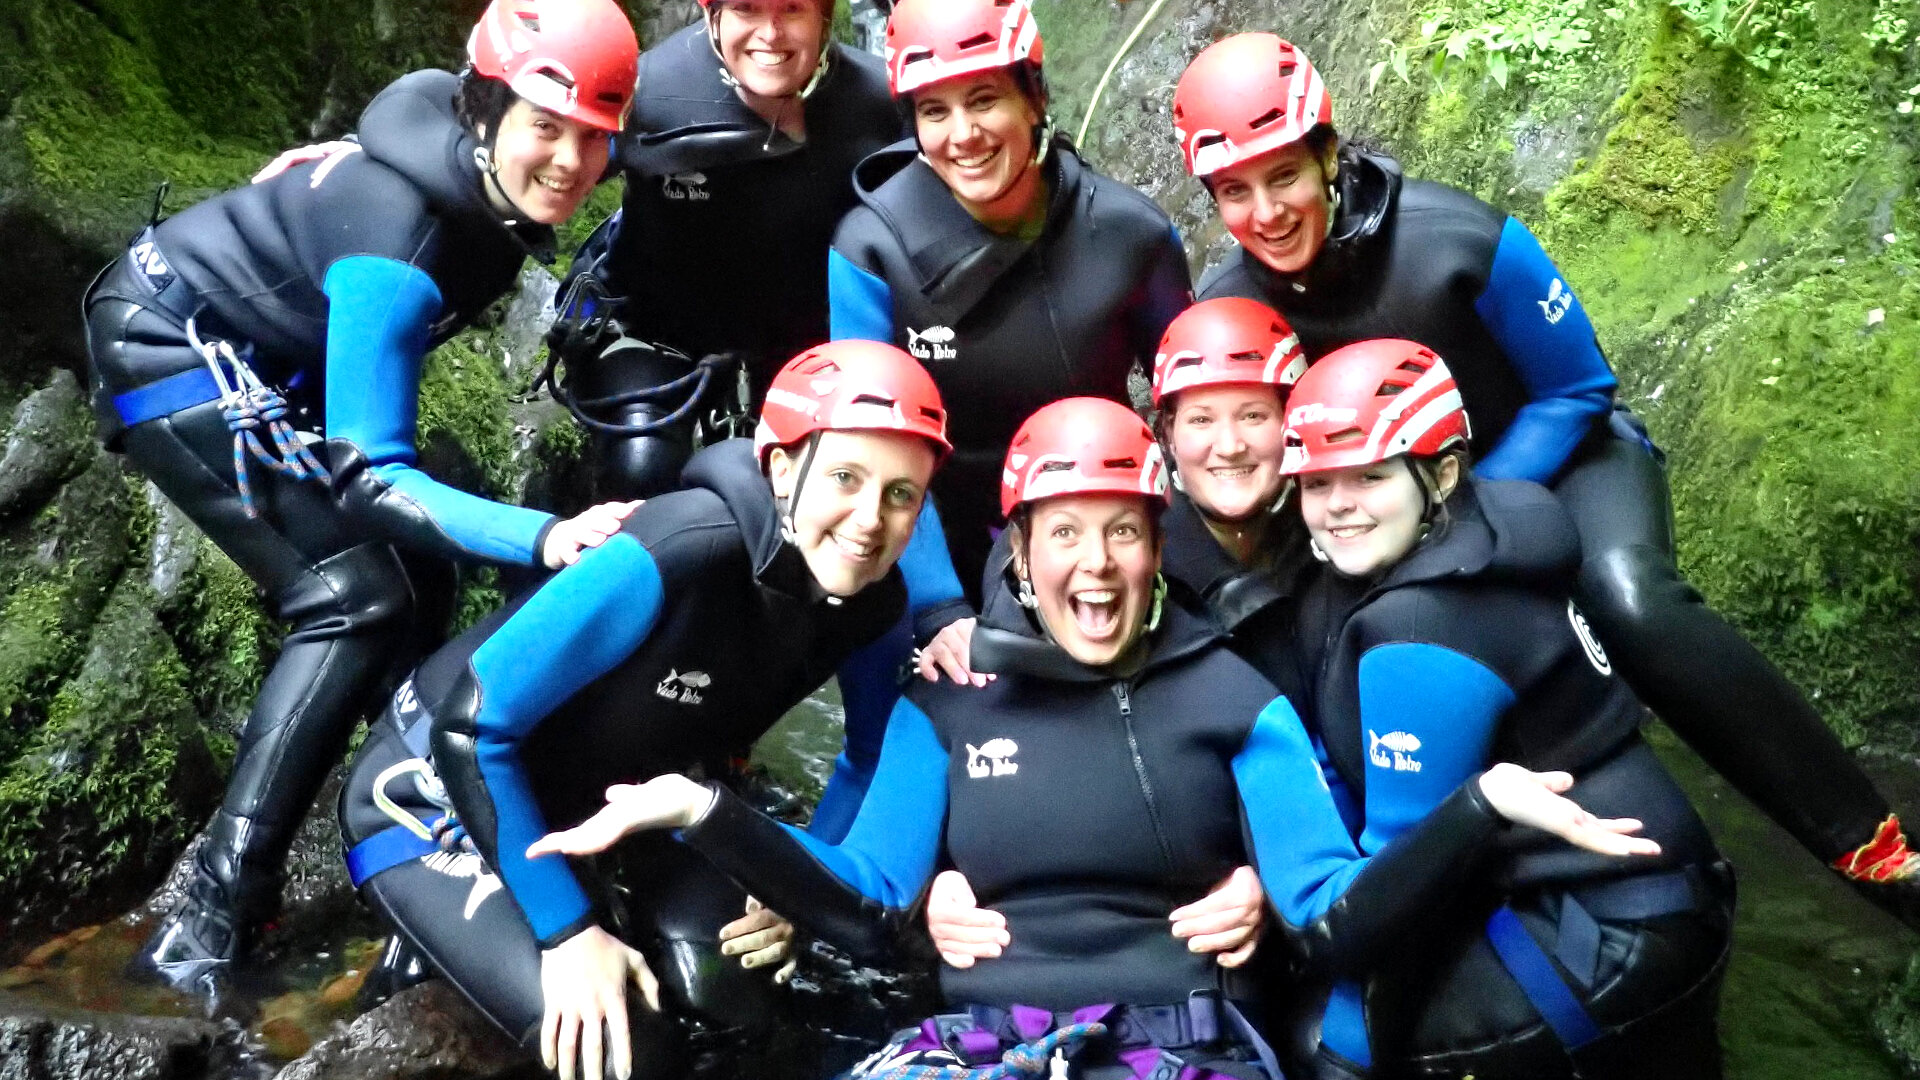 Group of women on hen party trip at base of gorge